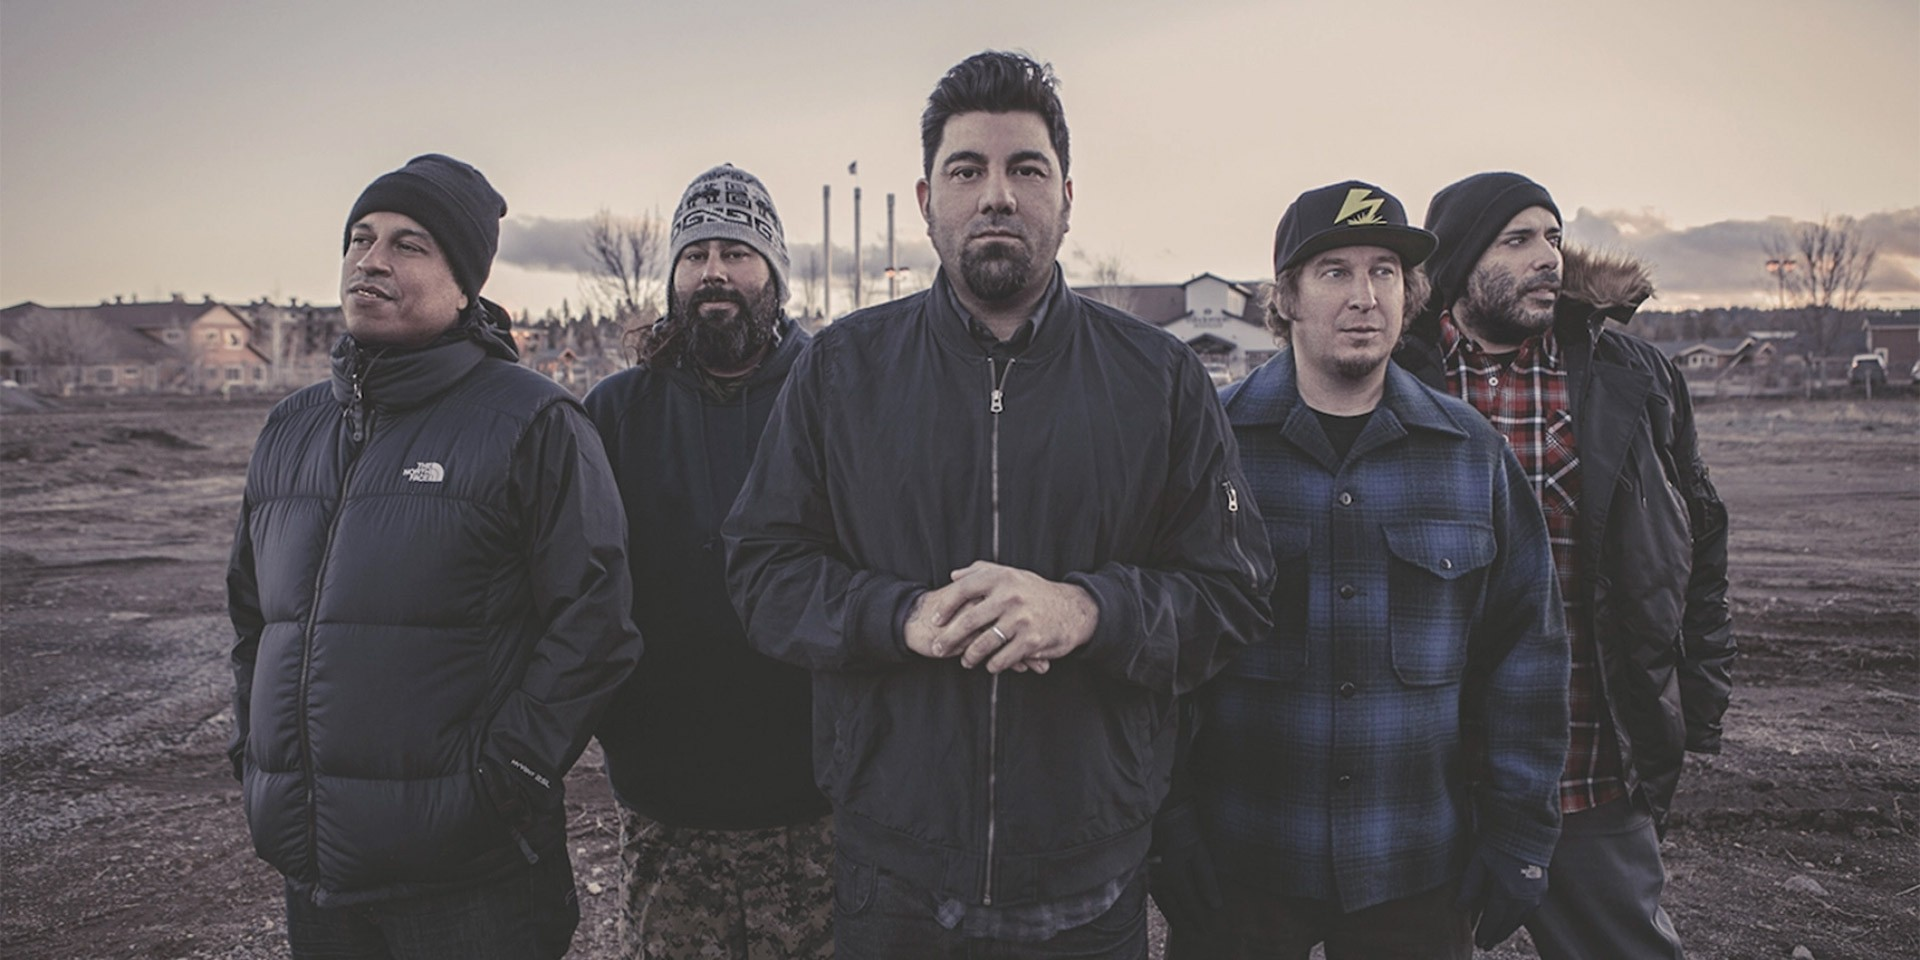 Hold On To Your Rocket Skates: 5 Essential Deftones Songs